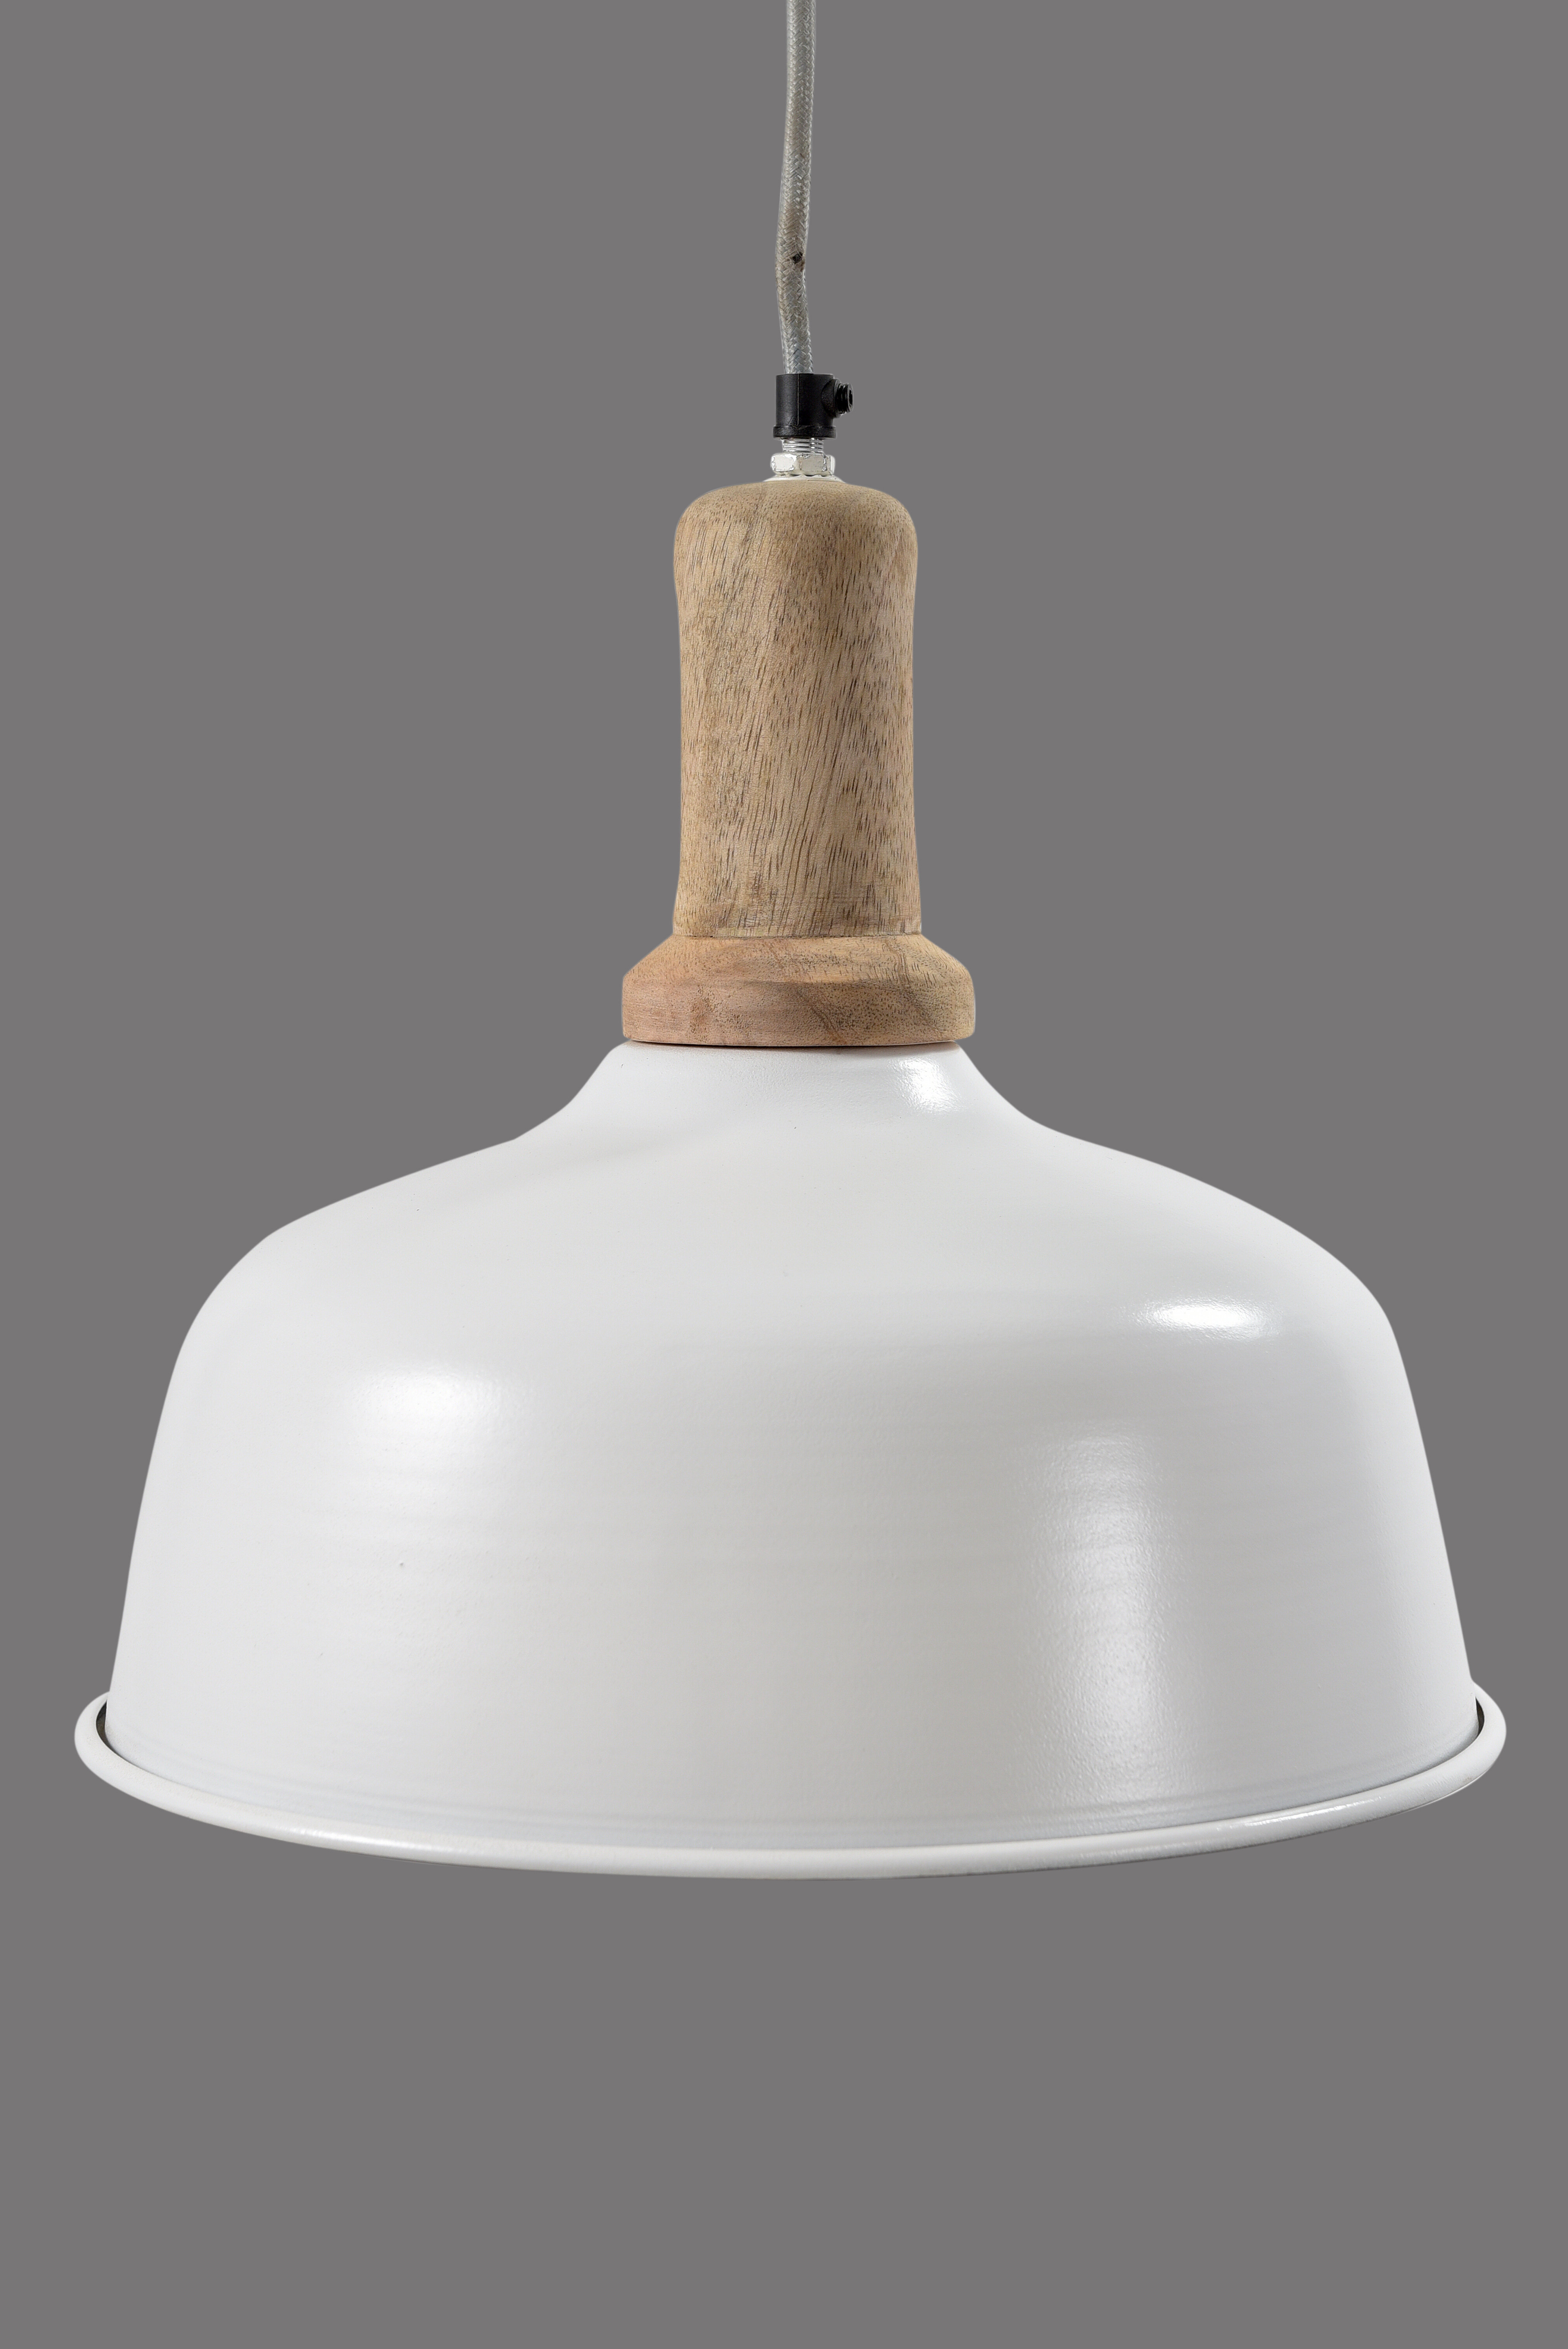 Best And Newest 1 Light Single Dome Pendants For Glenam 1 Light Single Dome Pendant (View 19 of 20)